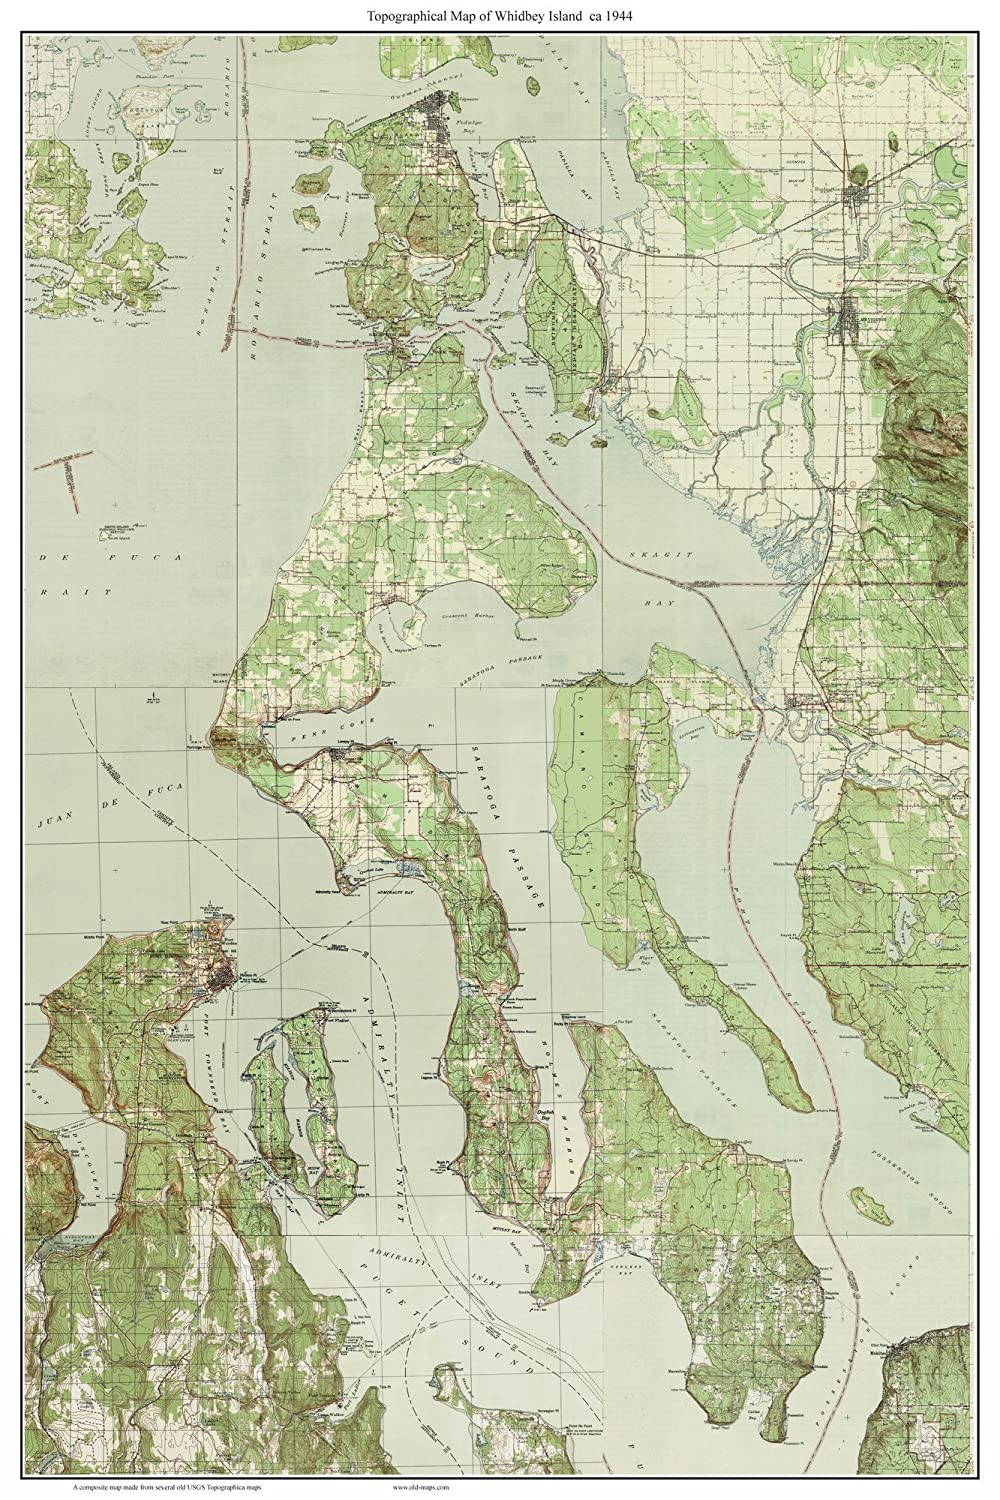 Amazon Whidbey Island ca 1944 USGS Old Topographic Map A